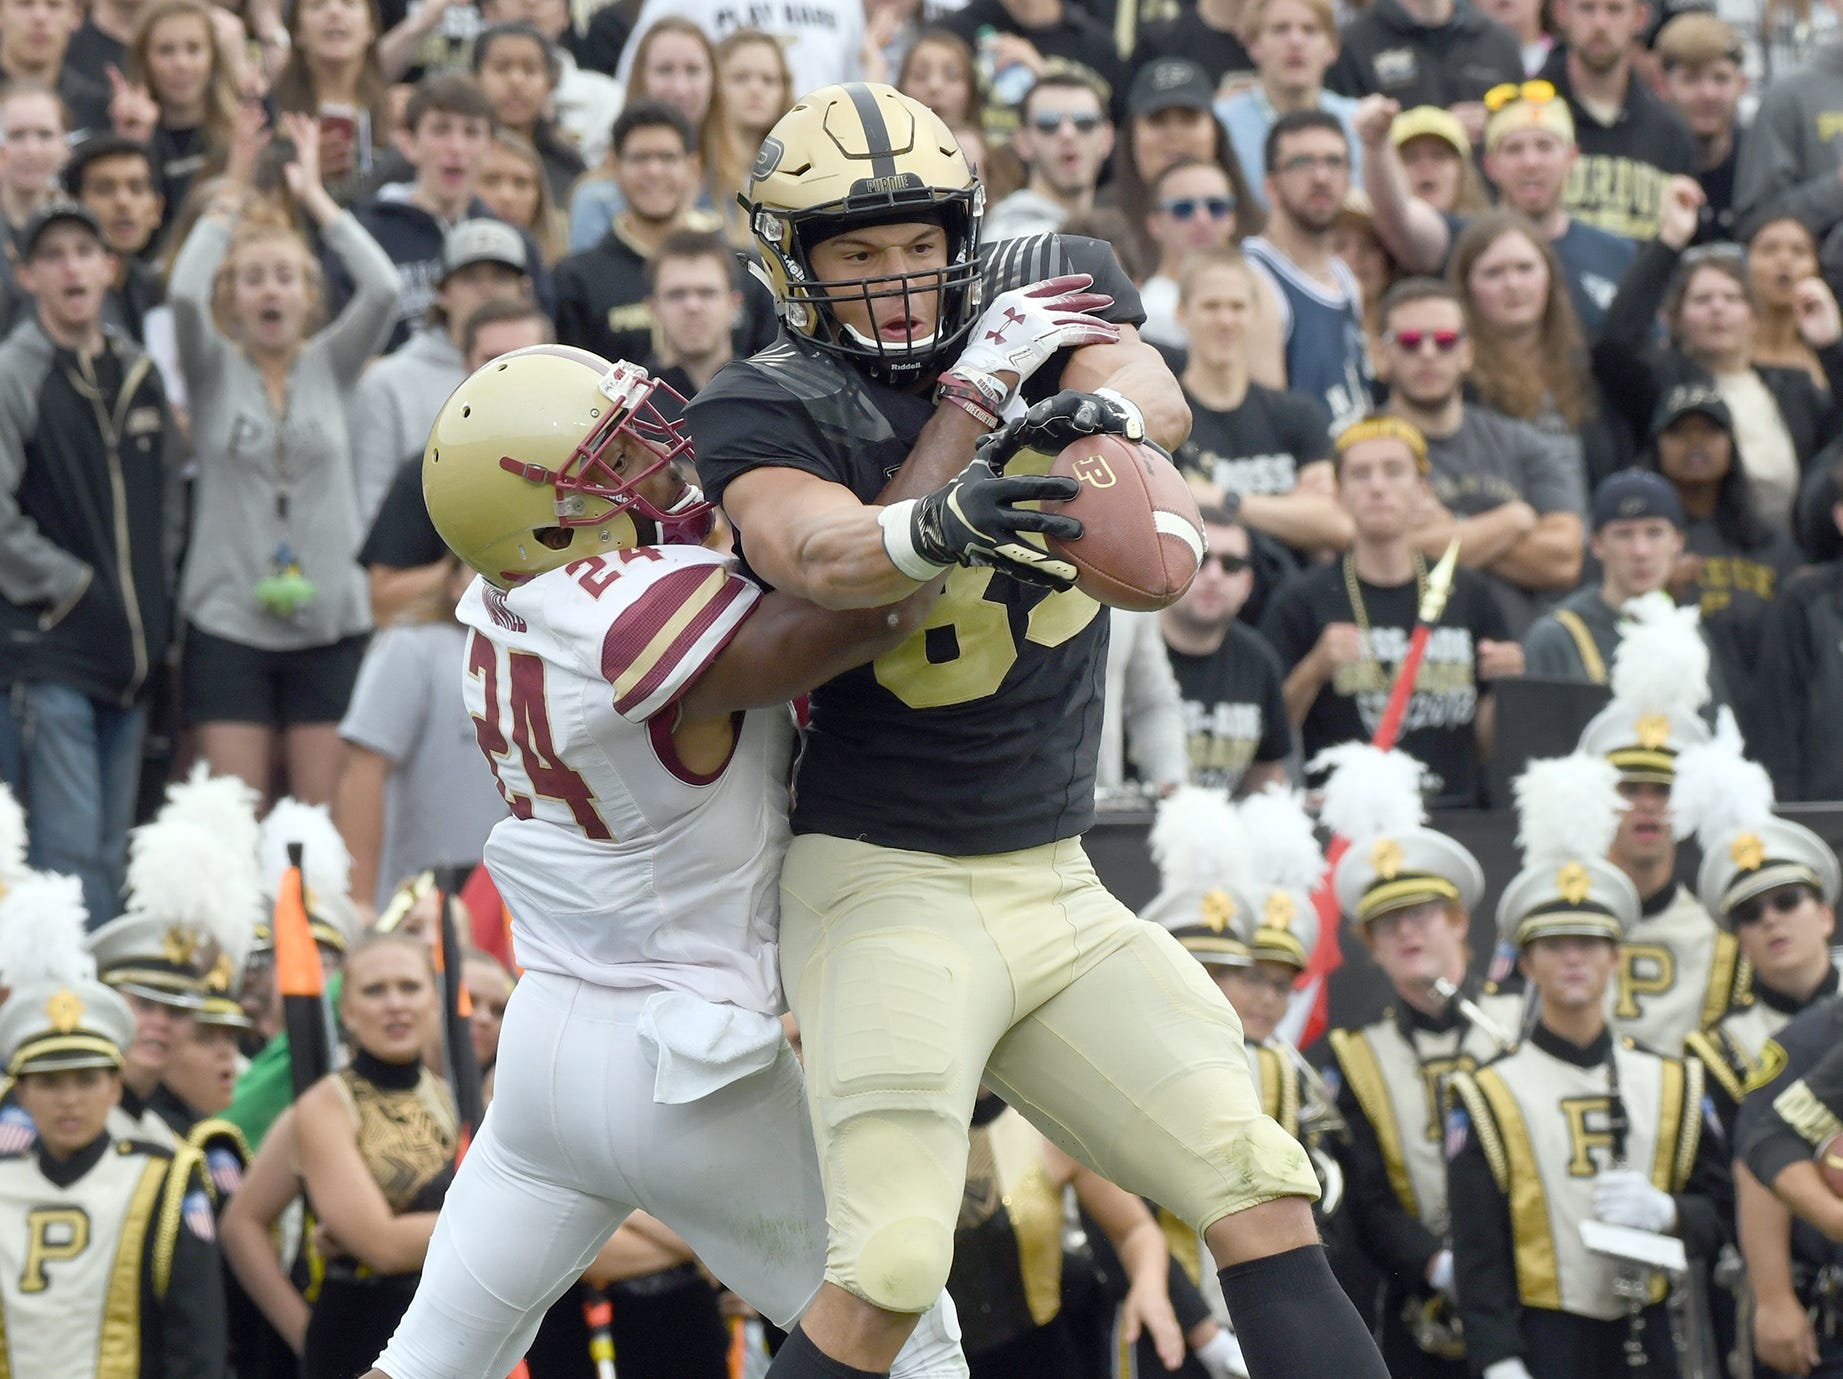 Purdue's Brycen Hopkins can't hang on to the ball in Purdue's 30-13 win in West Lafayette on Saturday September 22, 2018.